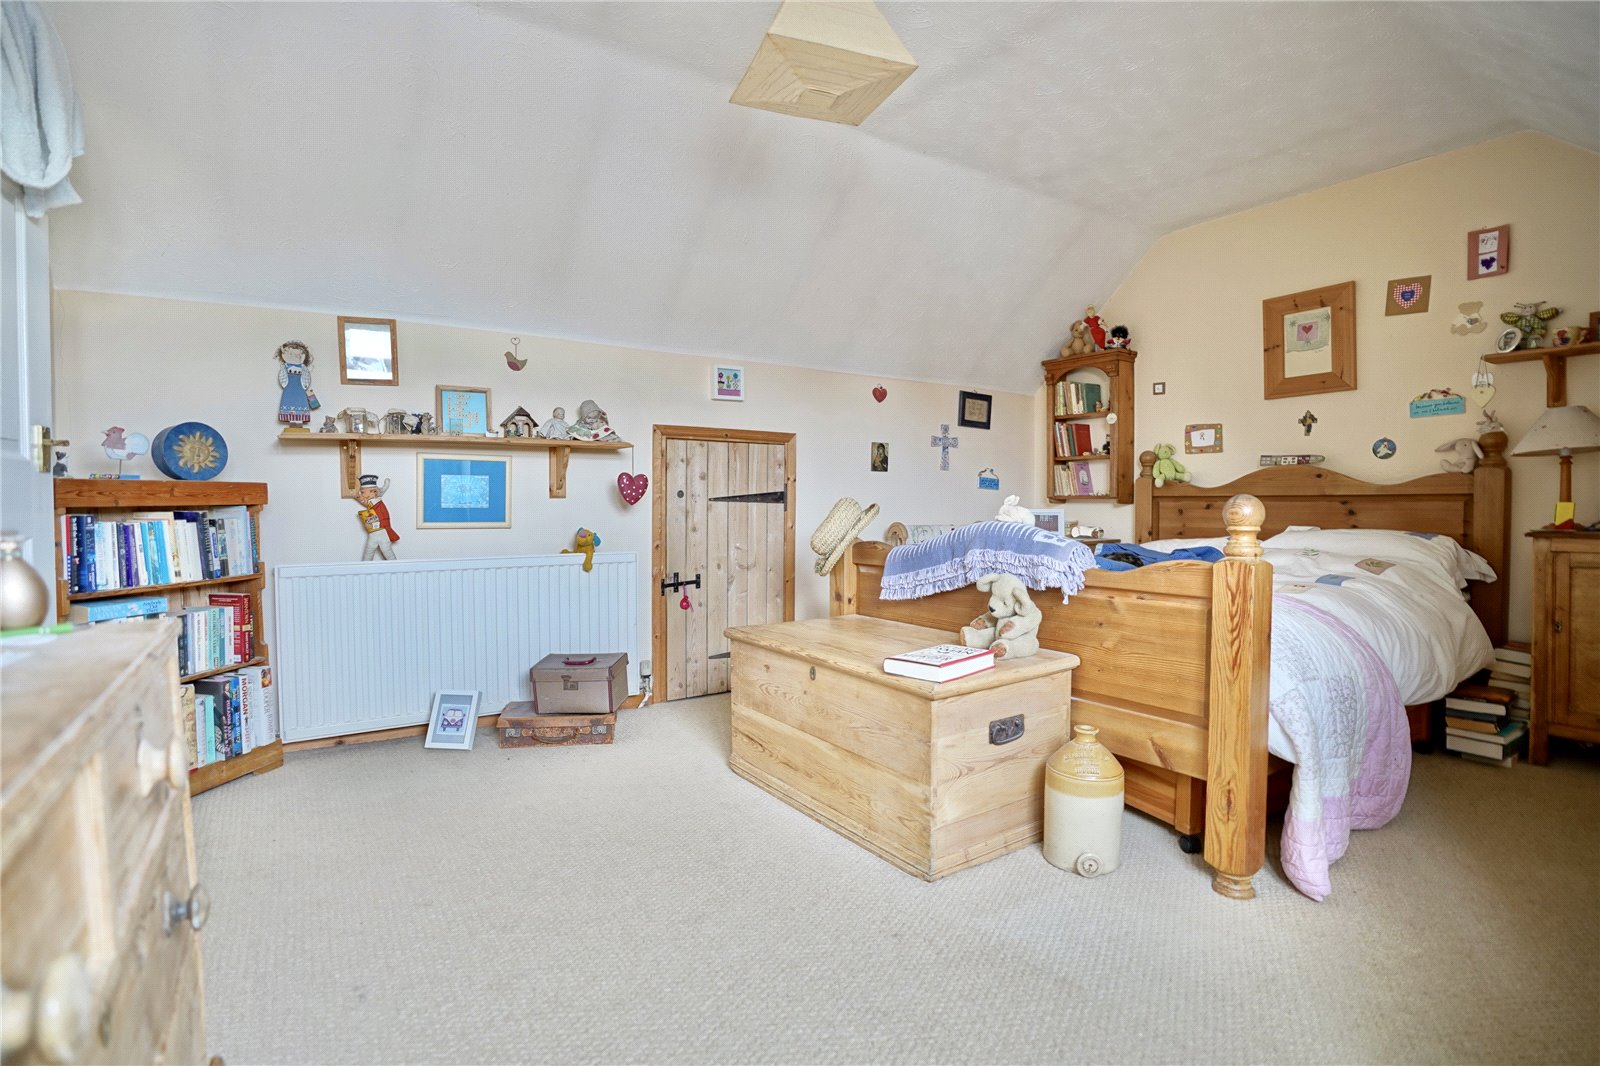 3 bed house for sale in Hemingford Grey, PE28 9BS  - Property Image 8